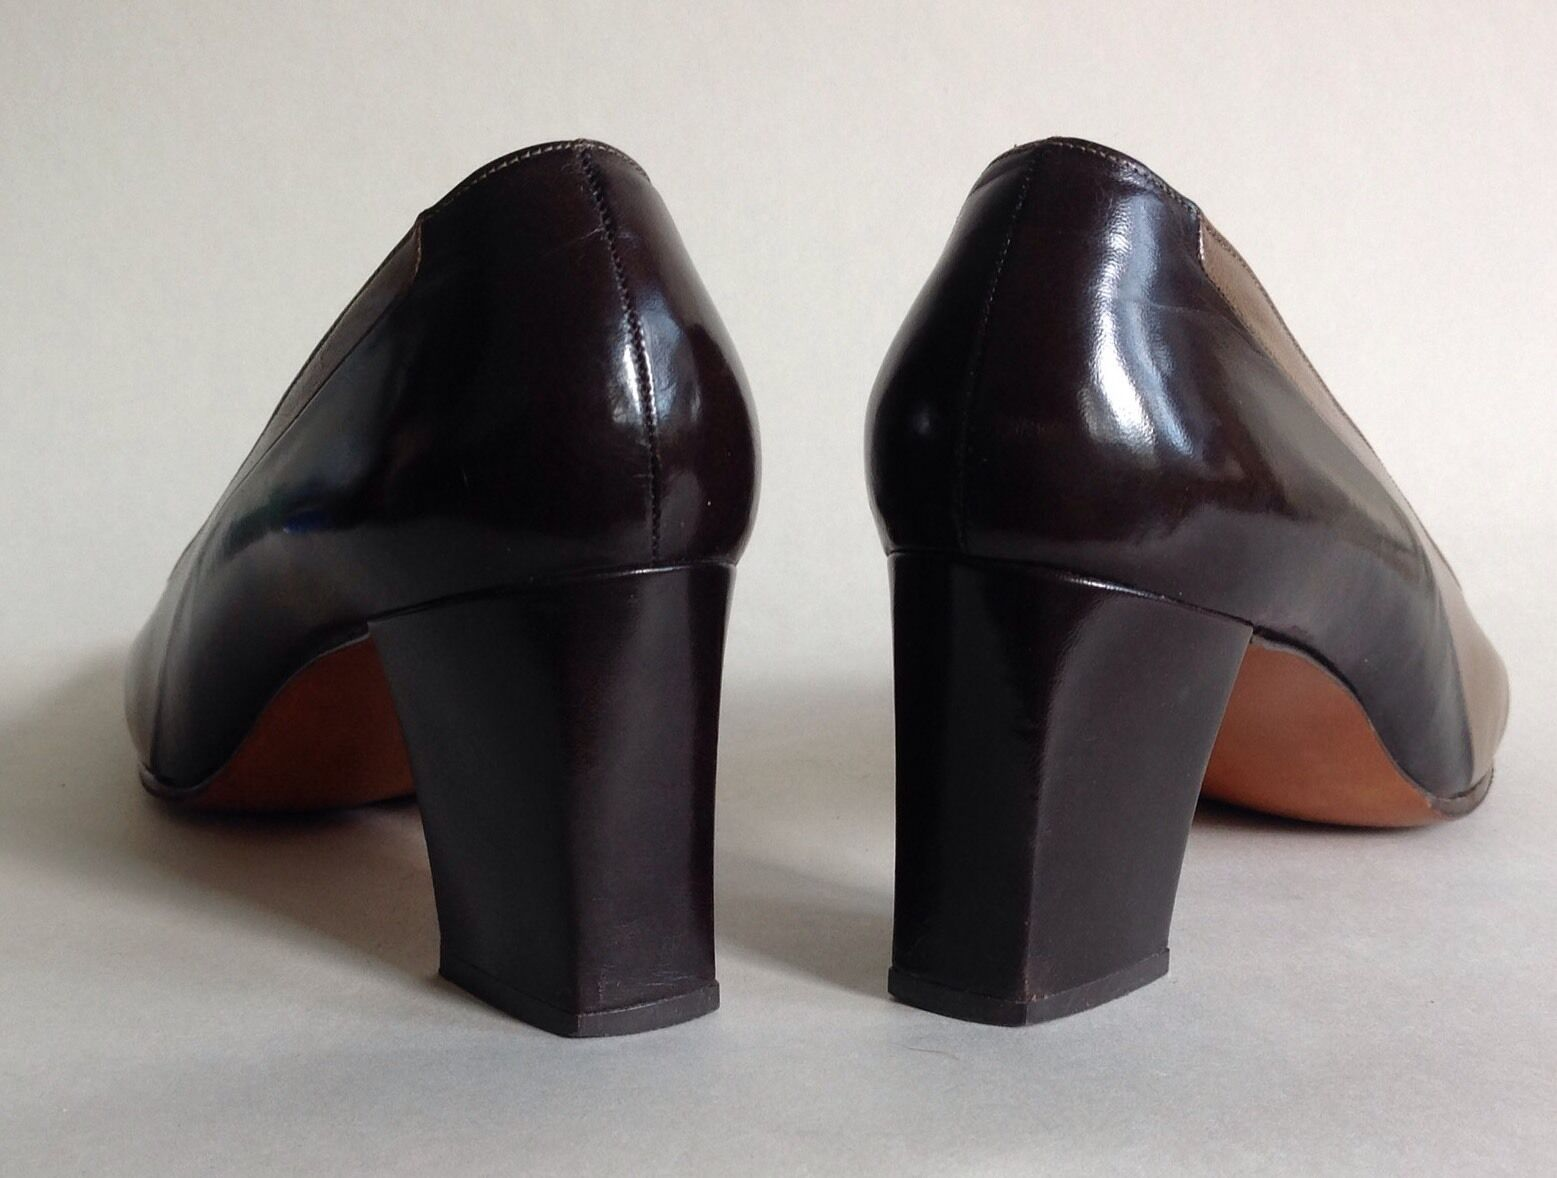 Bally Bellezza Bellezza Bellezza Brown & Taupe All Leather Mid Heel Court shoes UK 3.5 E EU 36.5 E 4ccad9